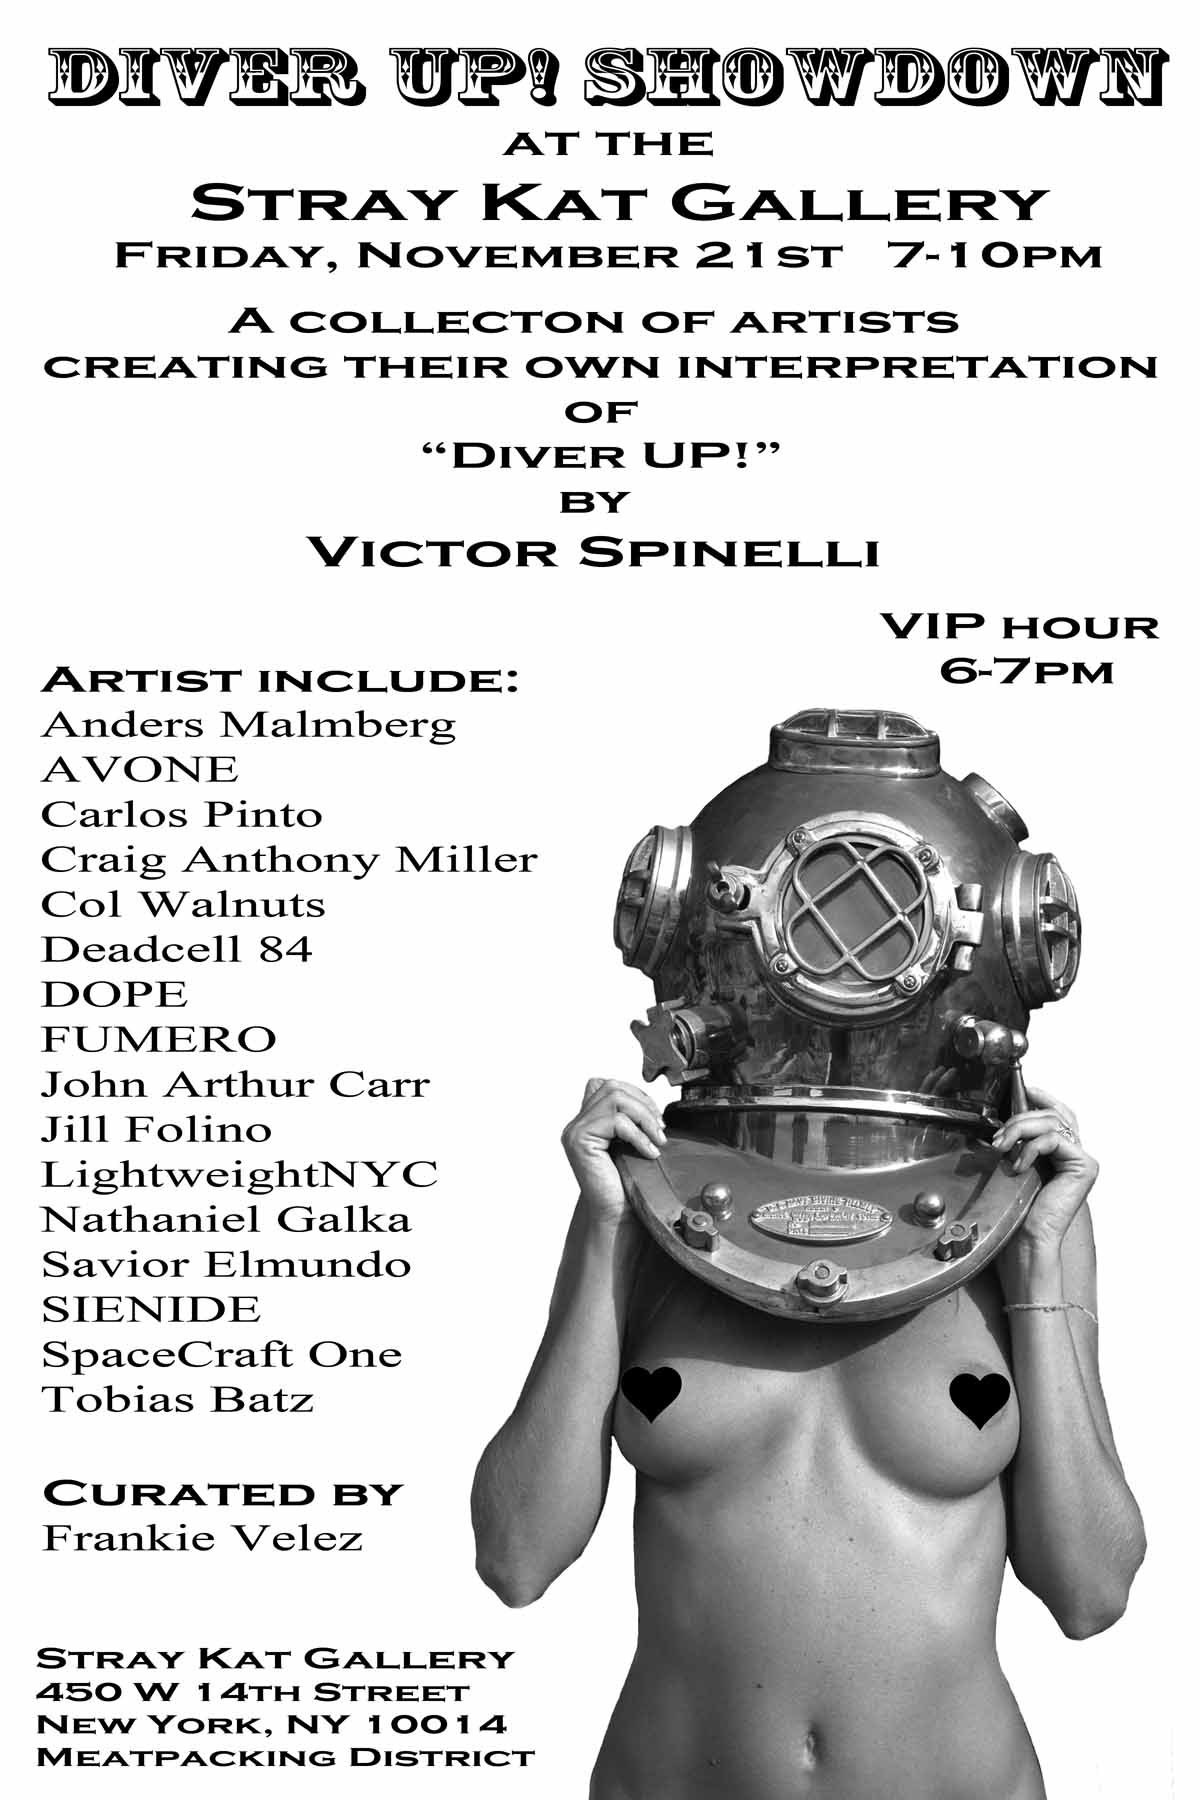 """STOP PRESS.  I am extremely honored that Art curator, Frankie Velez originated the idea to have a show centered around 16 other artists to create their own interpretation of my image, """"Diver UP!"""". This bang out event,  """"Diver UP! Showdown""""  will happen in NYC's famed Meatpacking District at the Stray Kat Gallery on November 21st, 2014. 450 W 14th and the Highline (10th Ave). Hope to see you there!"""